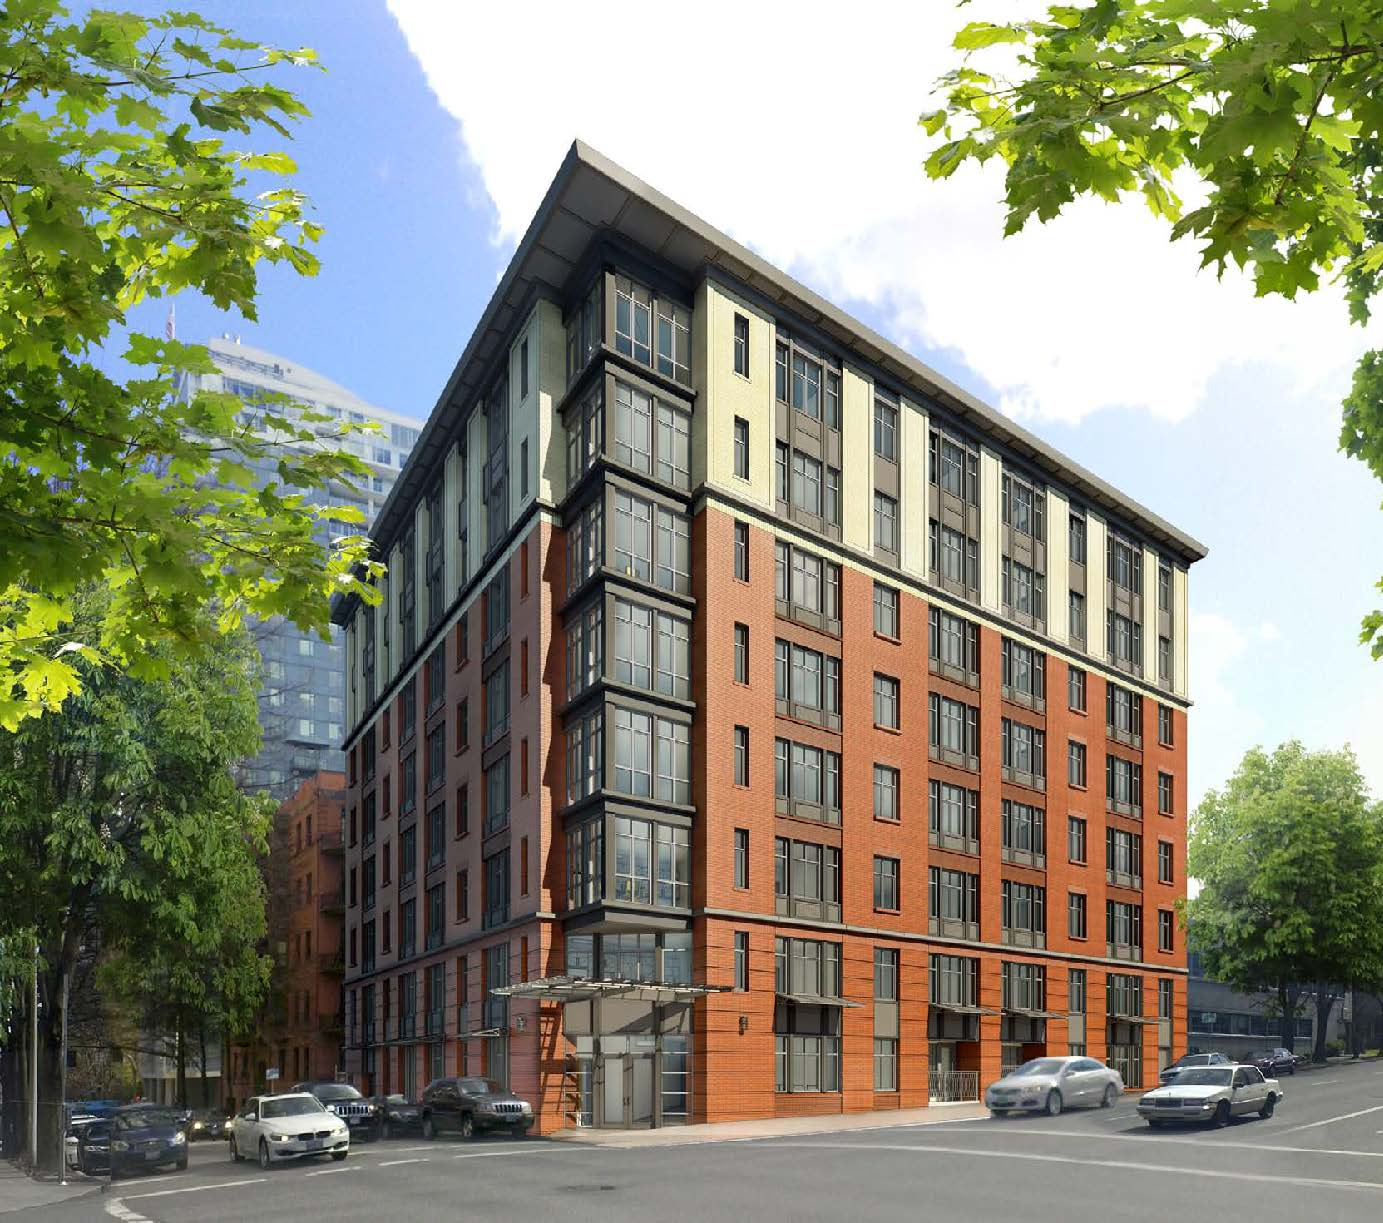 Cheap Apartments Outside Bricks: Under Construction: 12th & Clay Apartments (images)